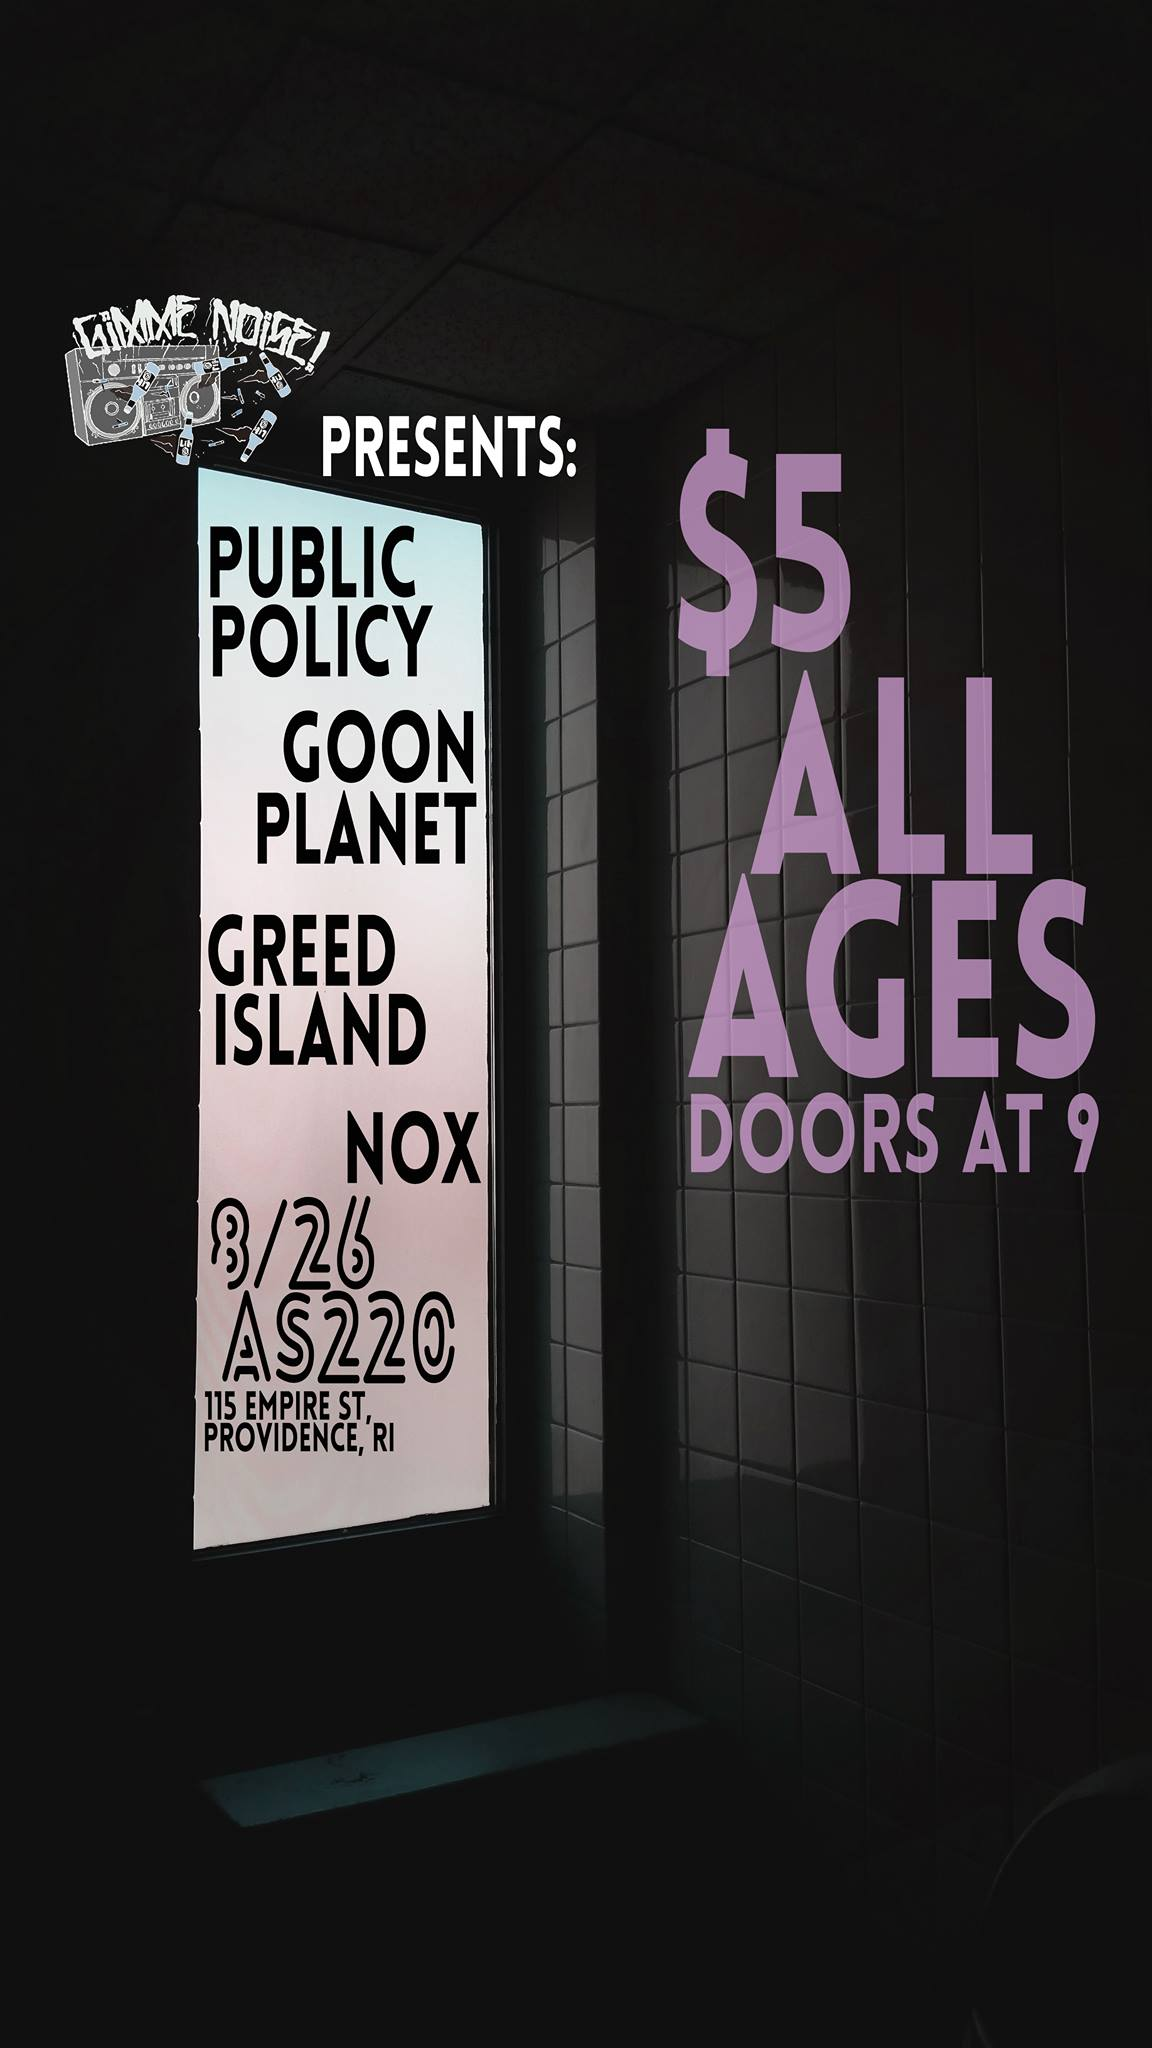 Goon Planet, Public Policy, Greed Island (NH) and NOX @ AS220 Main Stage